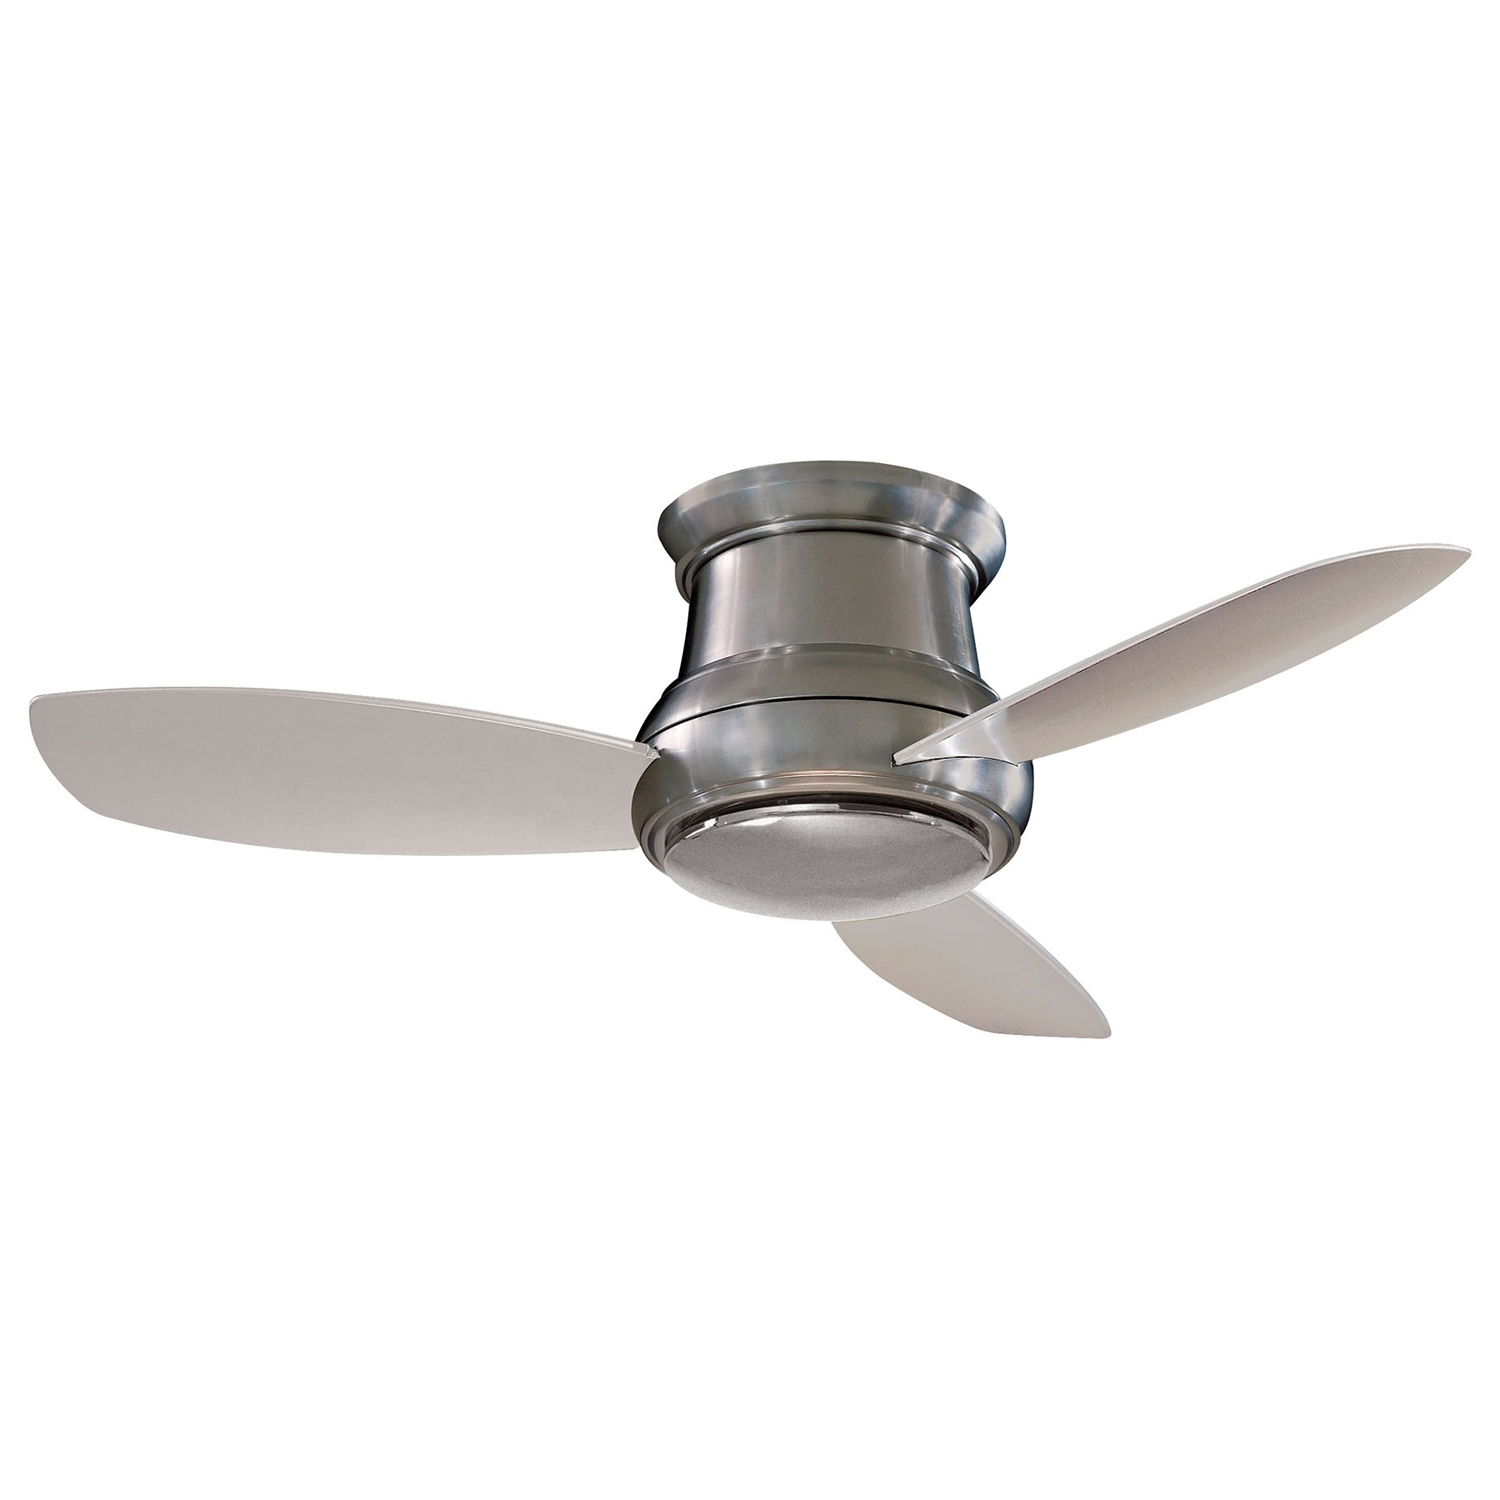 Newest 24 Inch Outdoor Ceiling Fans With Light Inside Ceiling Fan: Remarkable 36 Outdoor Ceiling Fan For Home 36 Inch Fans (Gallery 1 of 20)